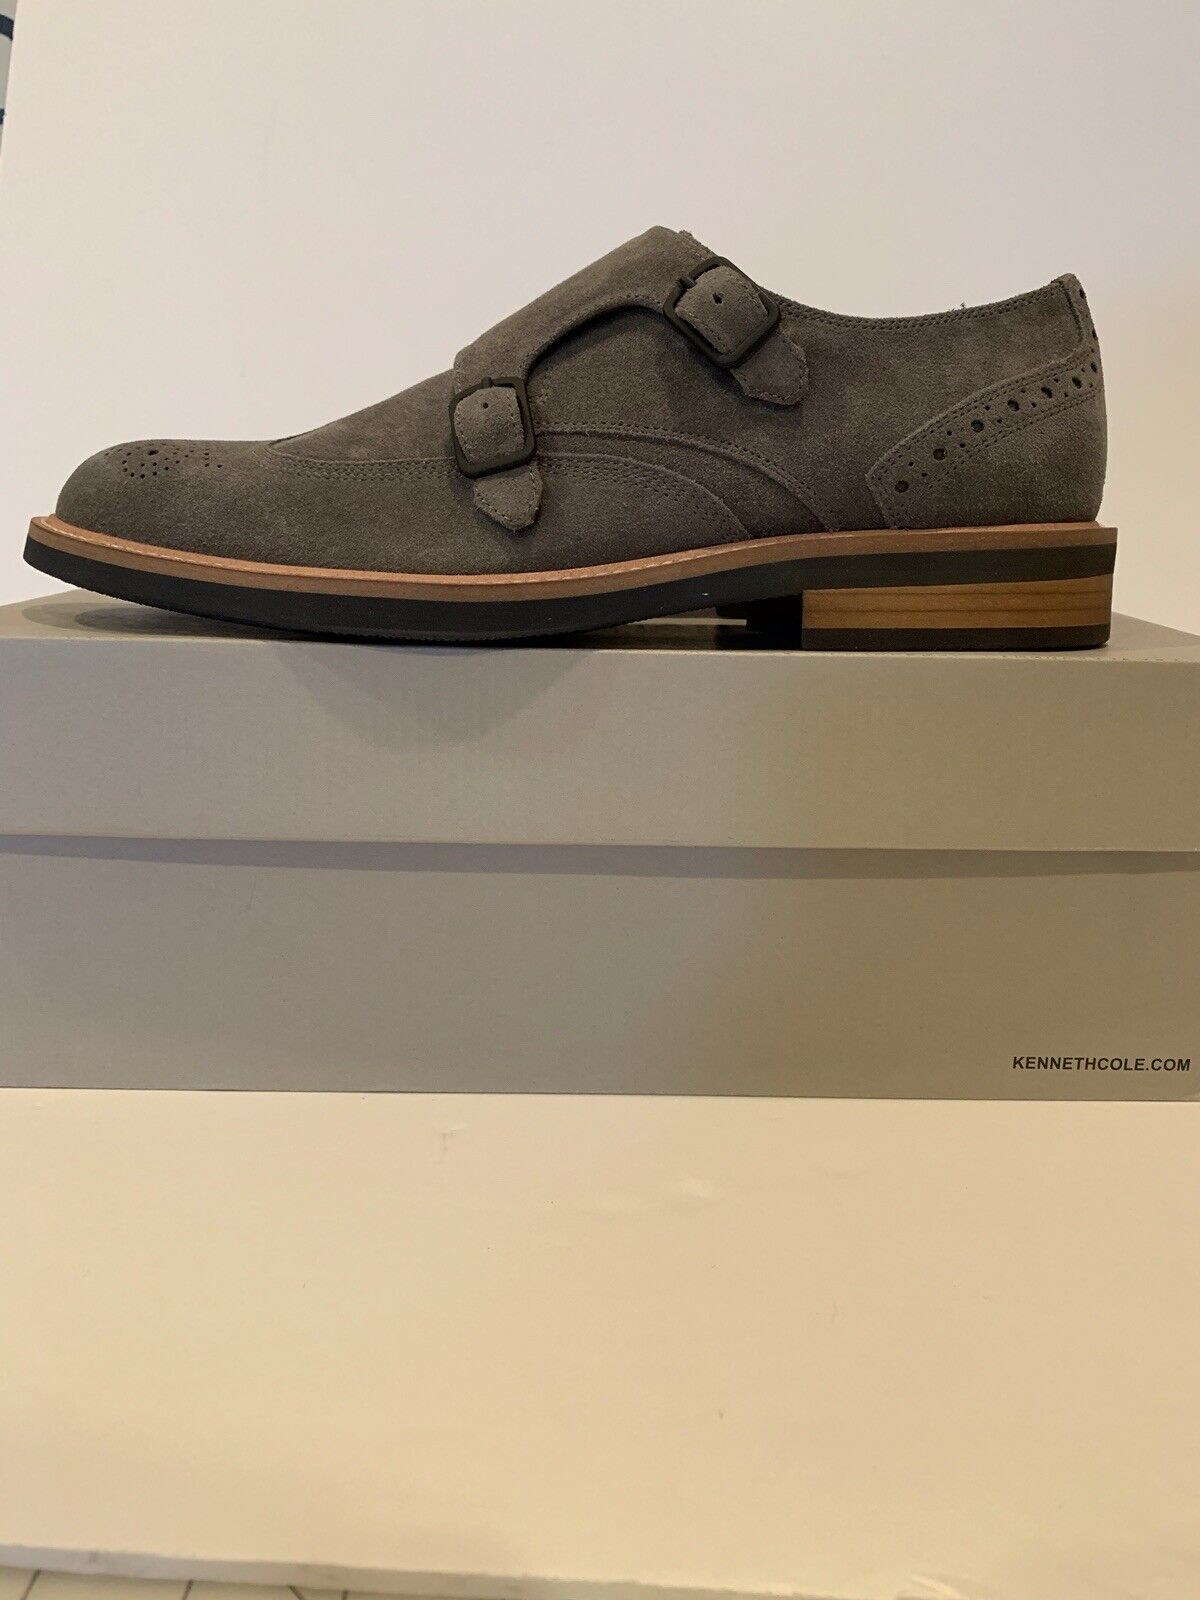 Kenneth Cole Klay Monk Grey Suede Double Monk Strap Shoes US 10.5